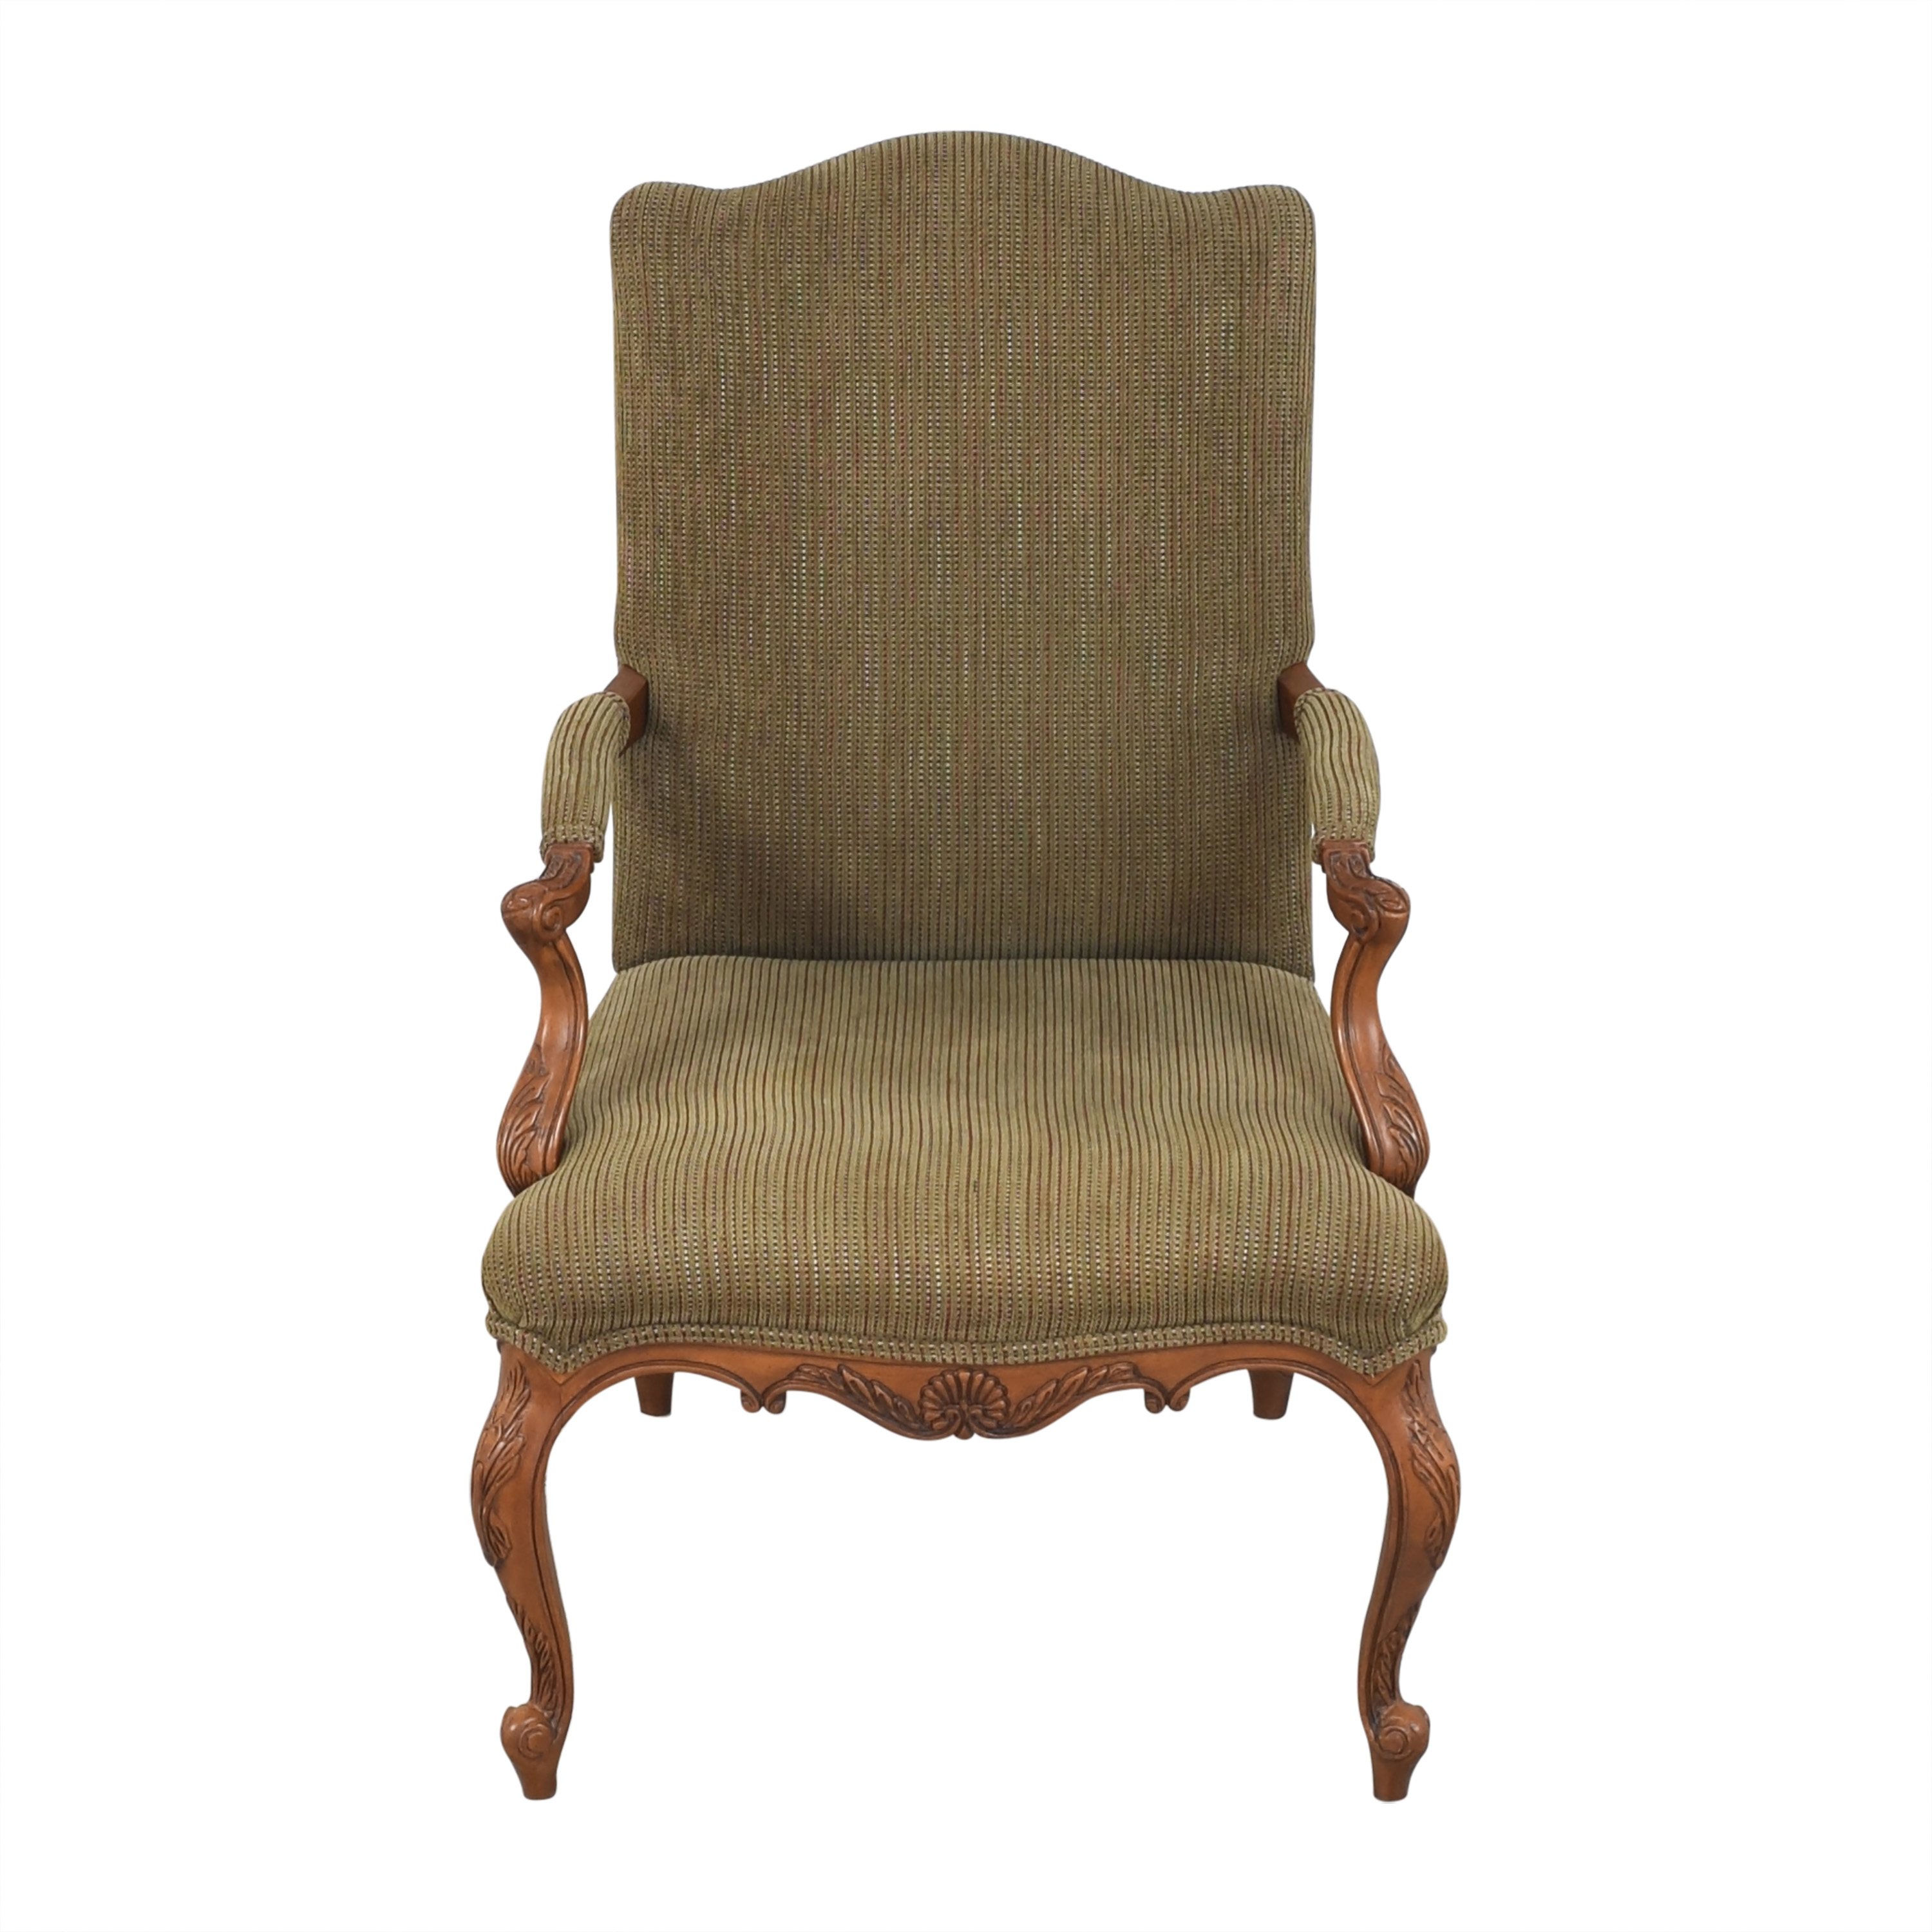 Drexel Heritage Drexel Heritage Accent Chair for sale